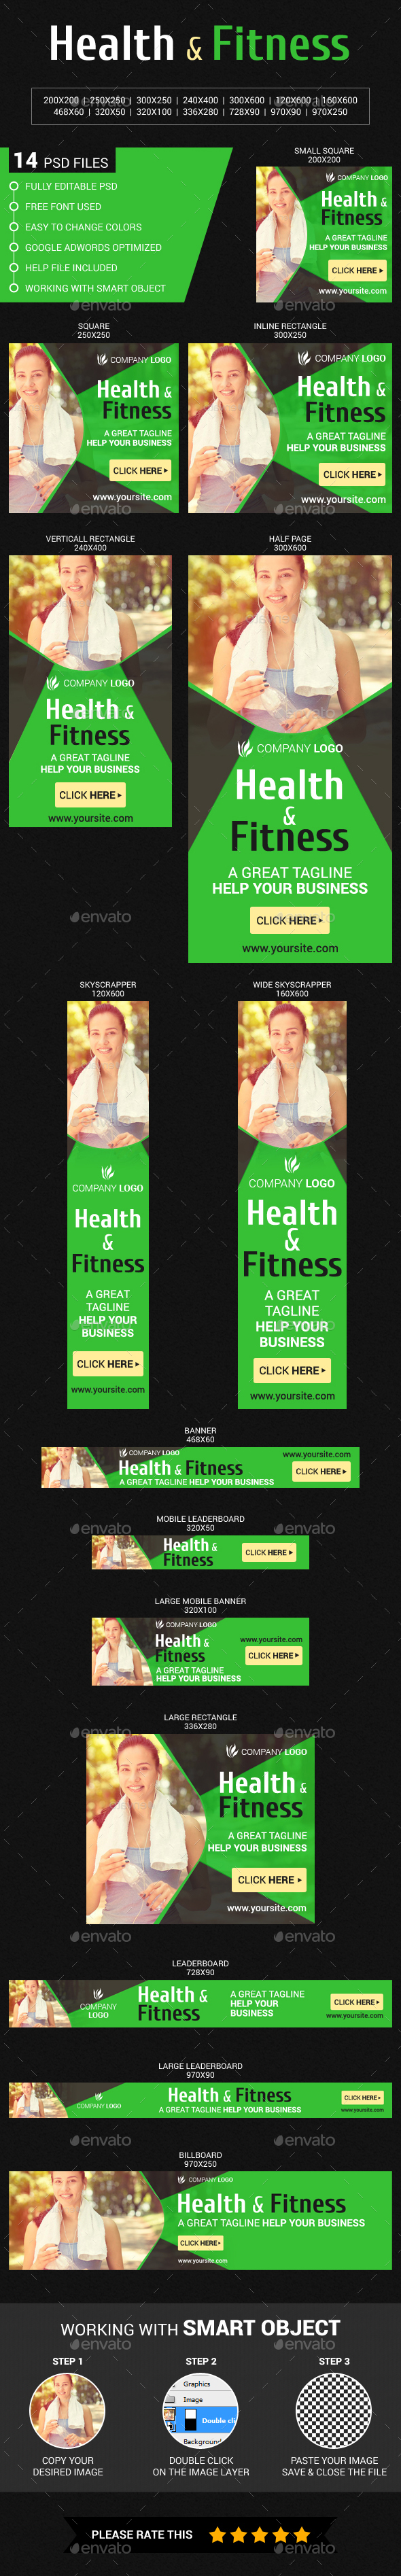 Health & Fitness_2 - Banners & Ads Web Elements